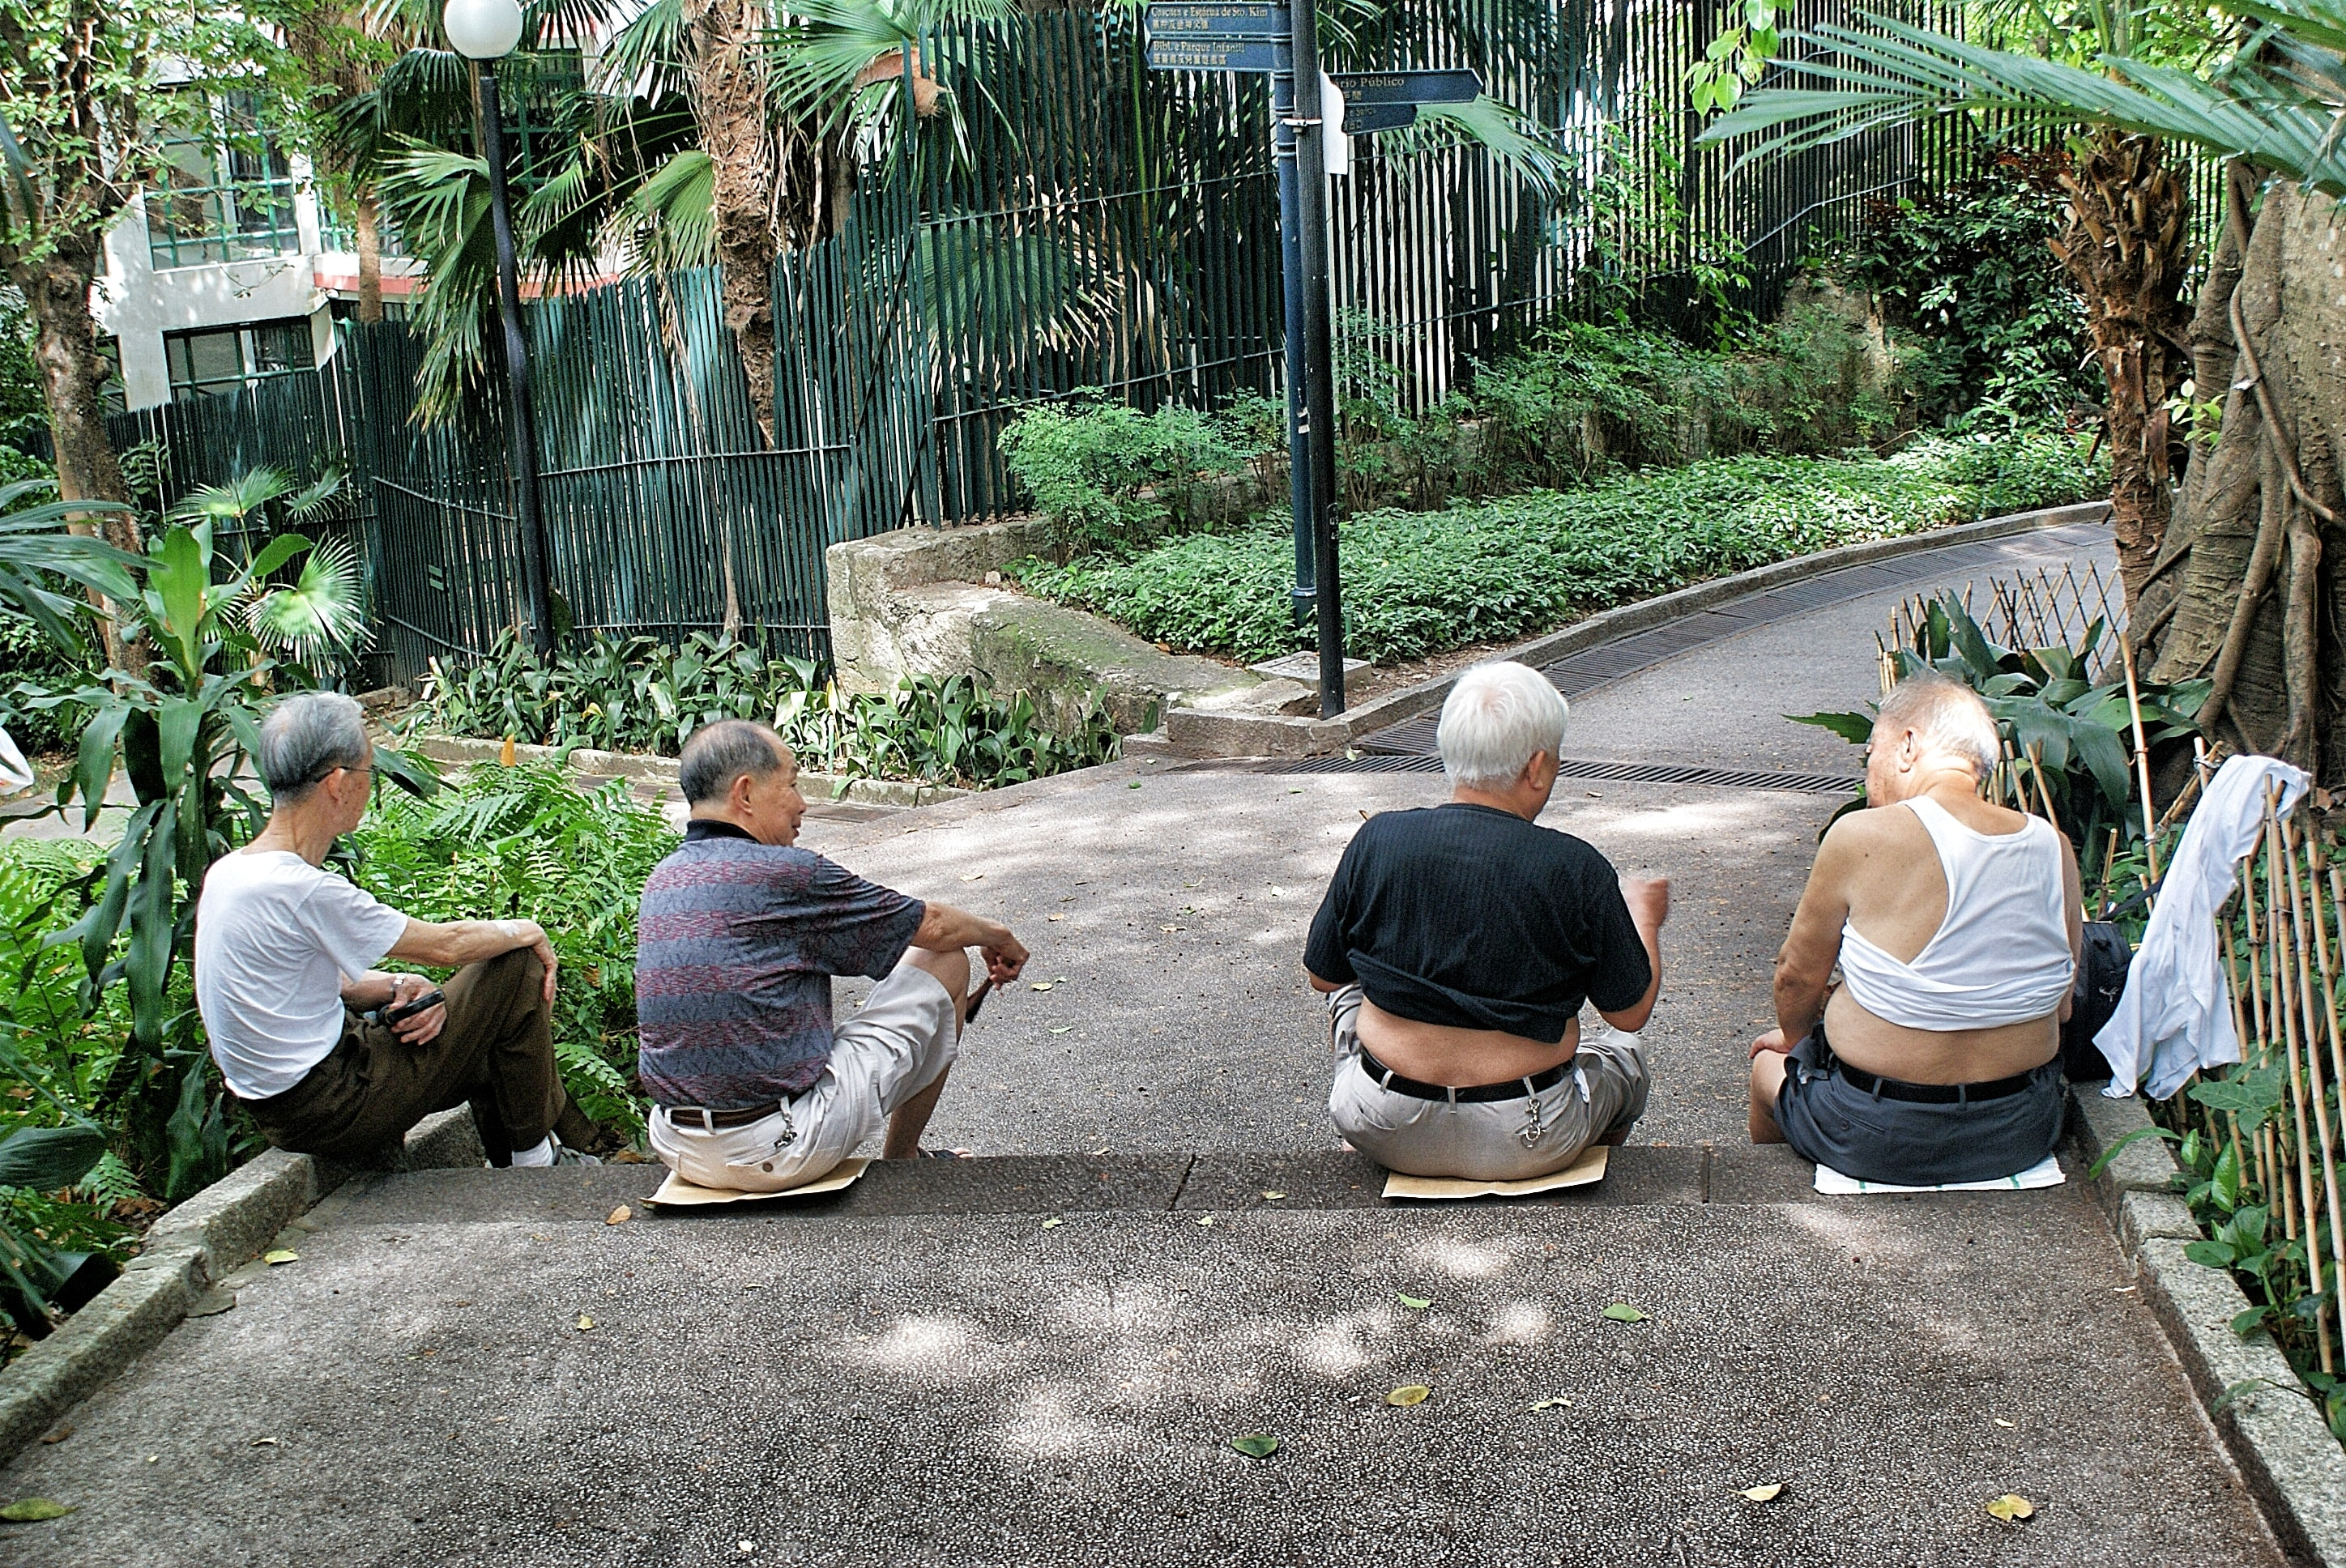 four persons sitting on gray surface